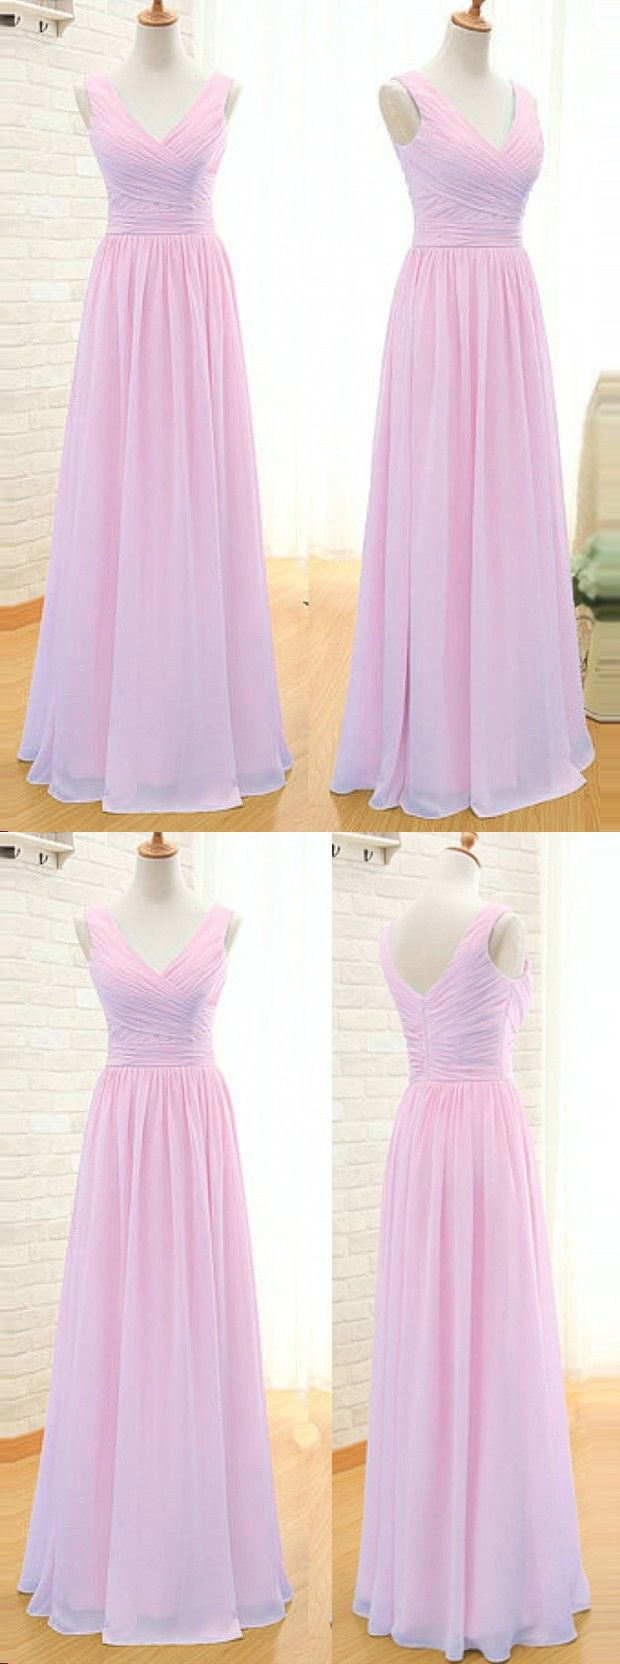 pink bridesmaid dress long bridesmaid dress v-neck bridesmadi dress